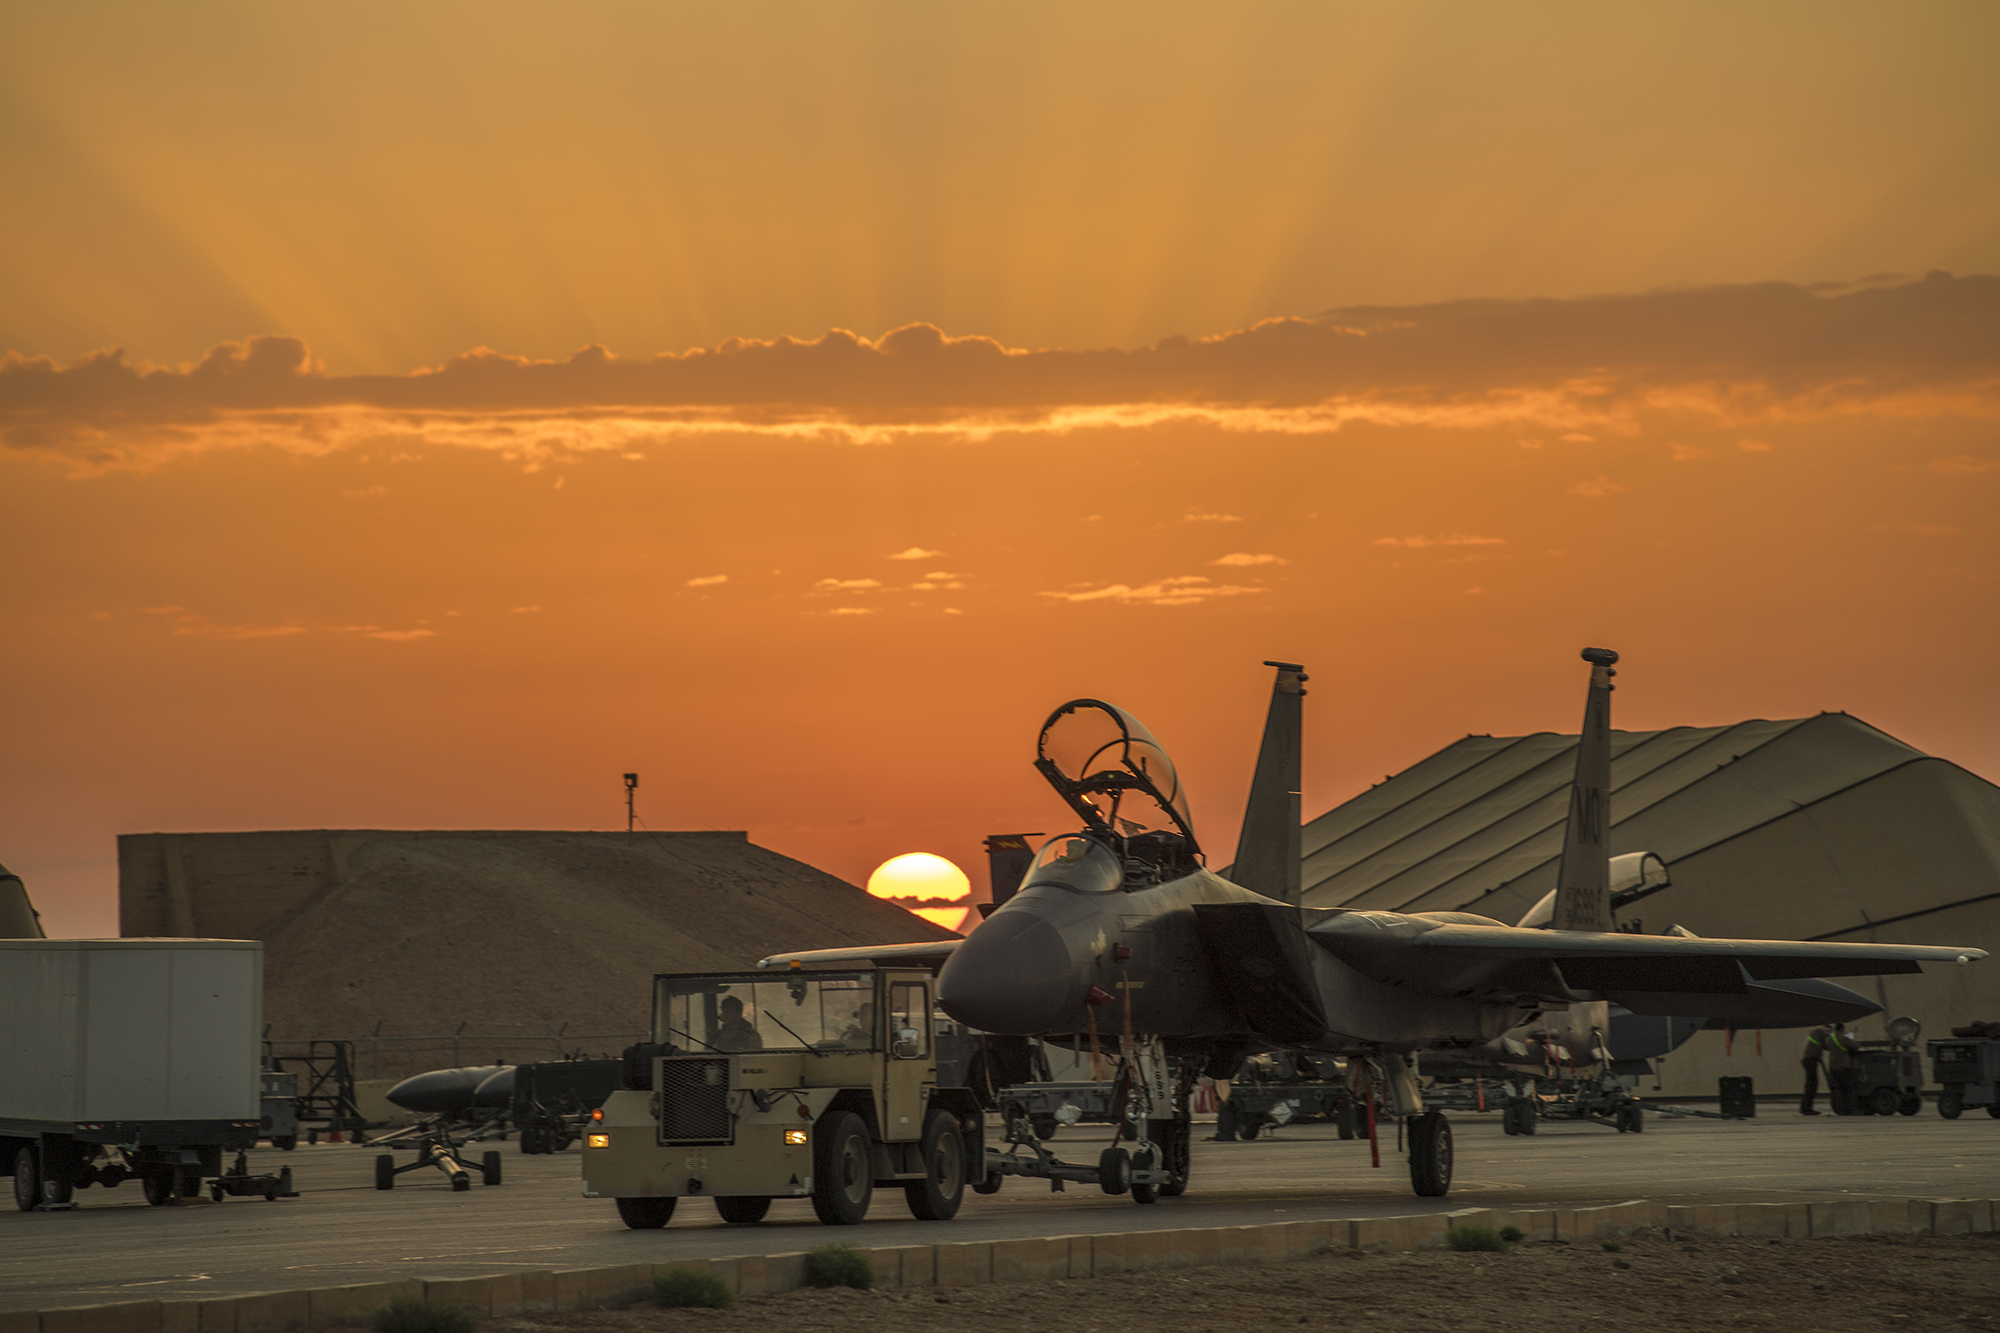 Airmen assigned to the 332nd Air Expeditionary Wing tow an F-15E Strike Eagle on April 15, 2020, at an undisclosed location in Southwest Asia. (Senior Master Sgt. Ralph Branson/Air Force)